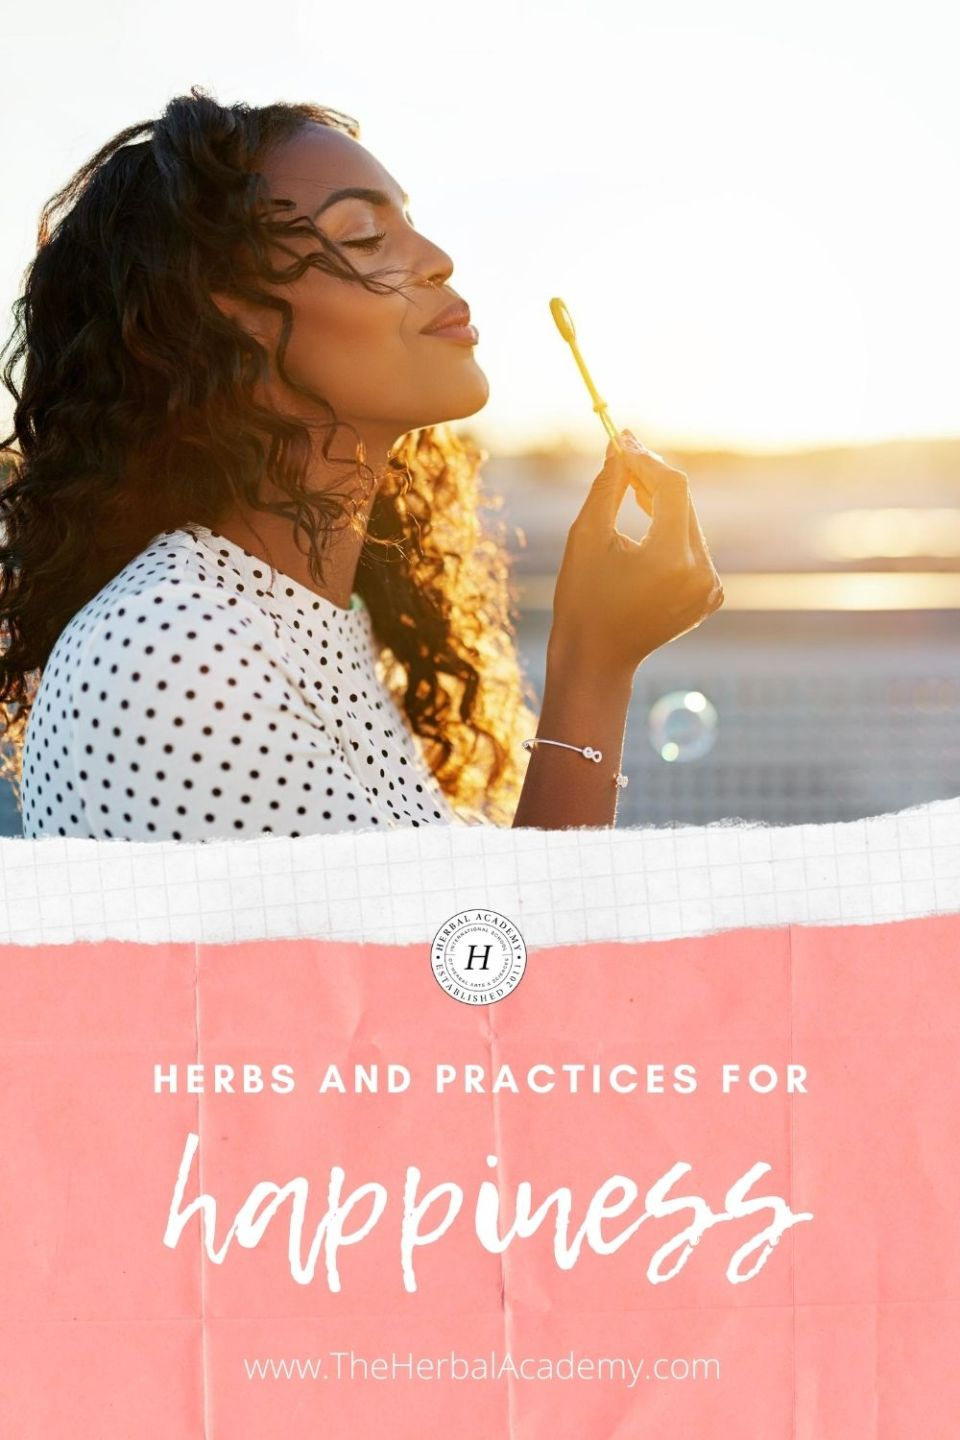 Practices and Herbs for Happiness | Herbal Academy | This article explores practices and herbs for happiness, elucidating practical ways in which you can take steps toward greater wellbeing.